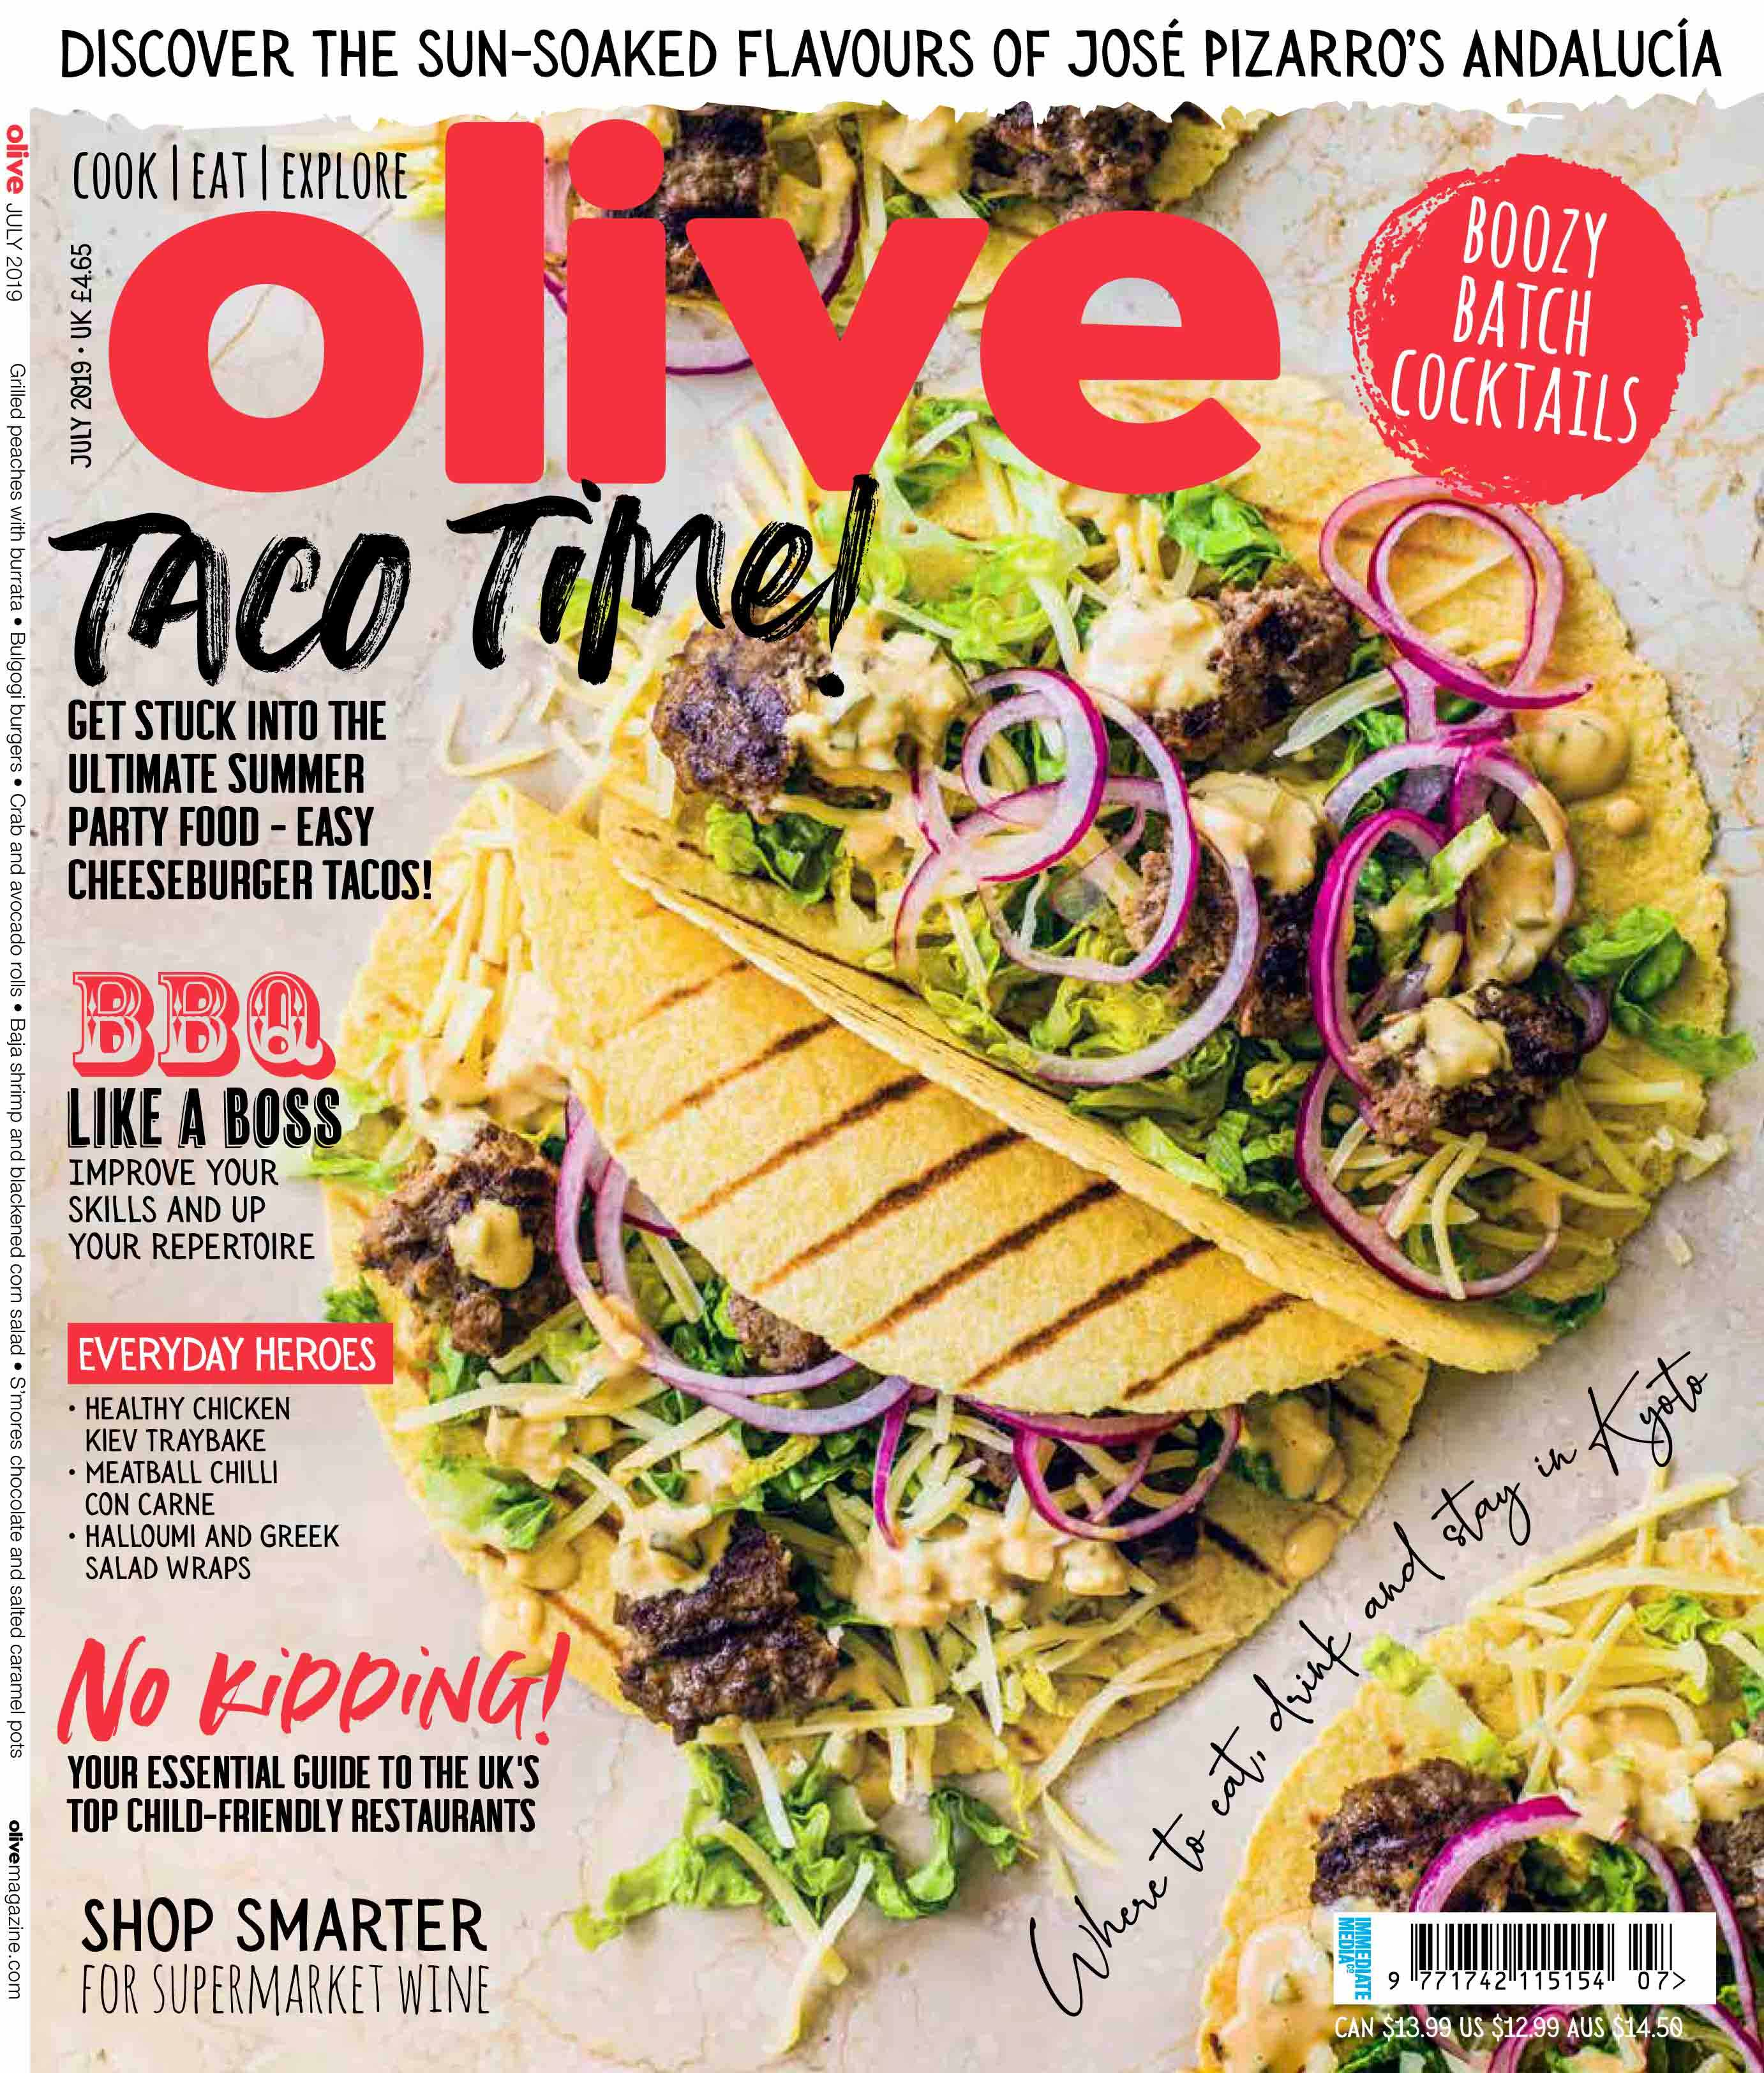 Subscribe to olive magazine July offer and discount